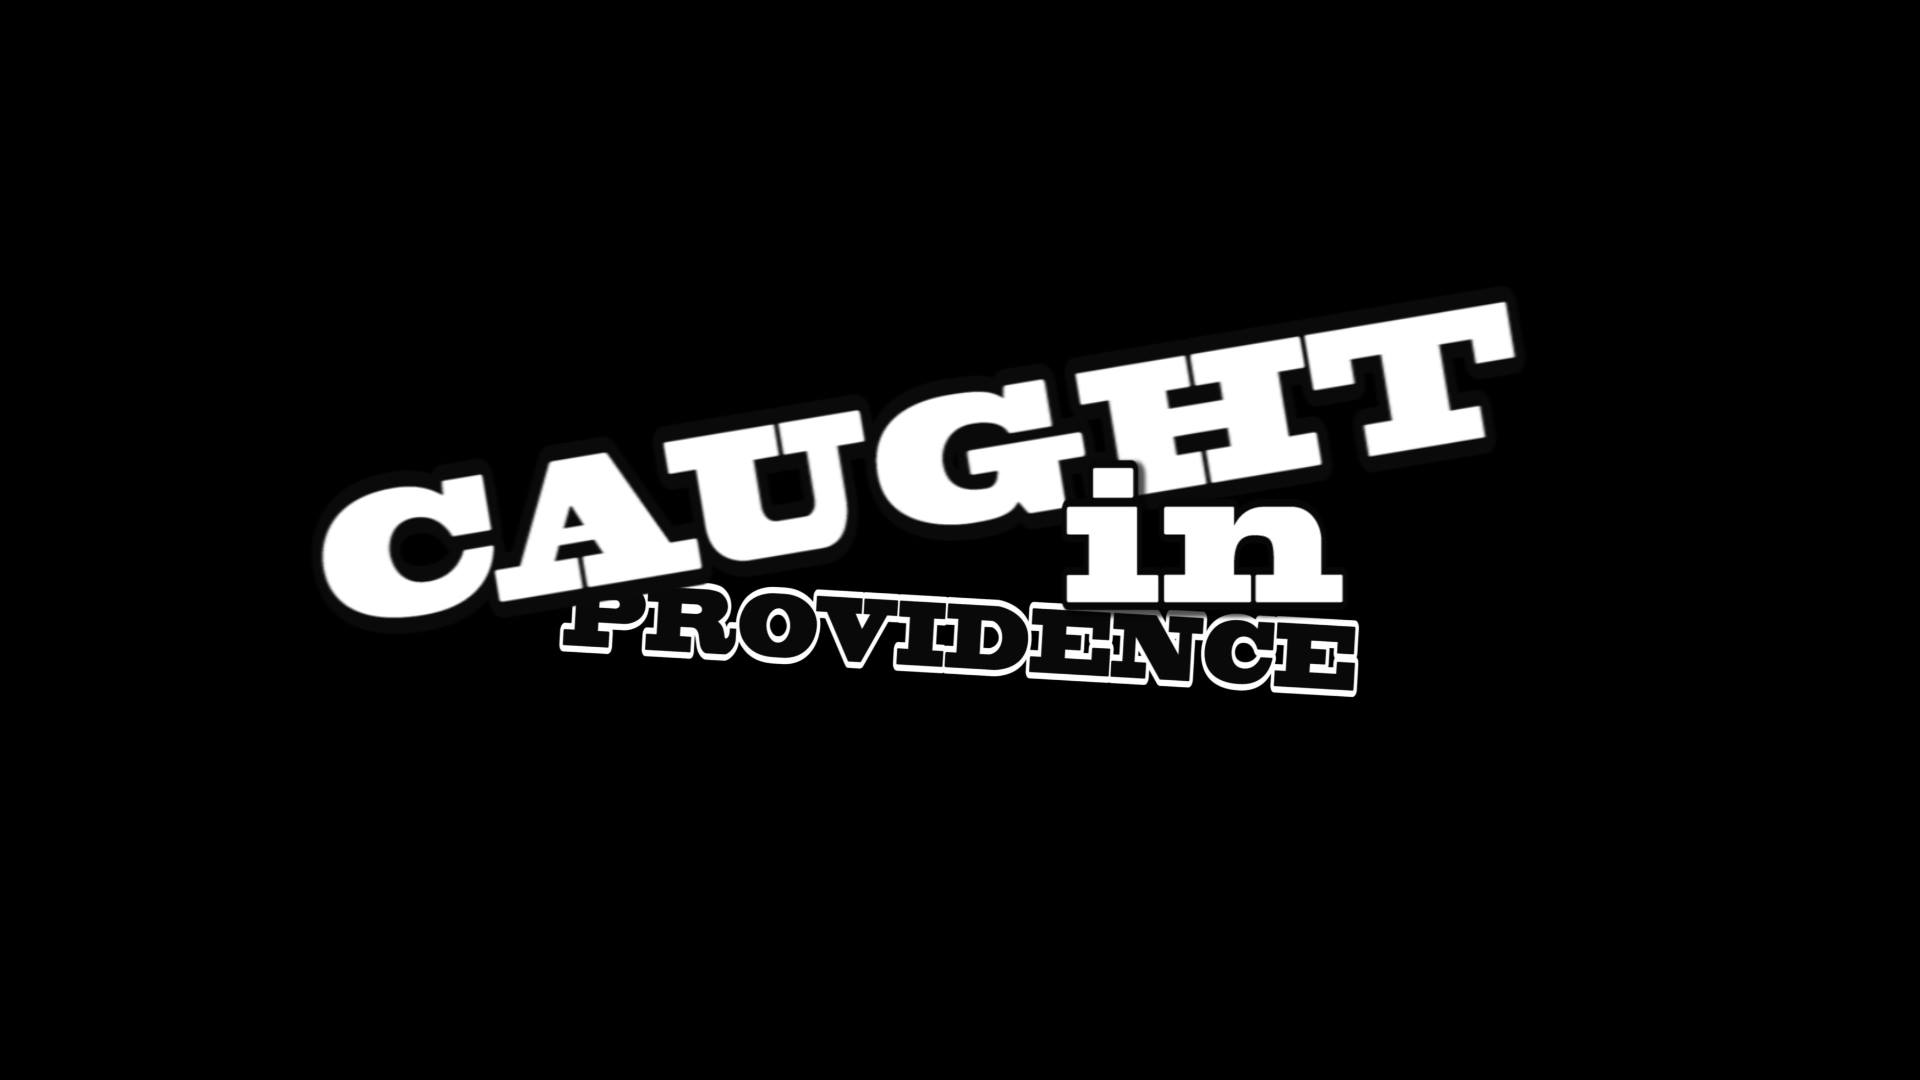 Caught in Providence (2000)